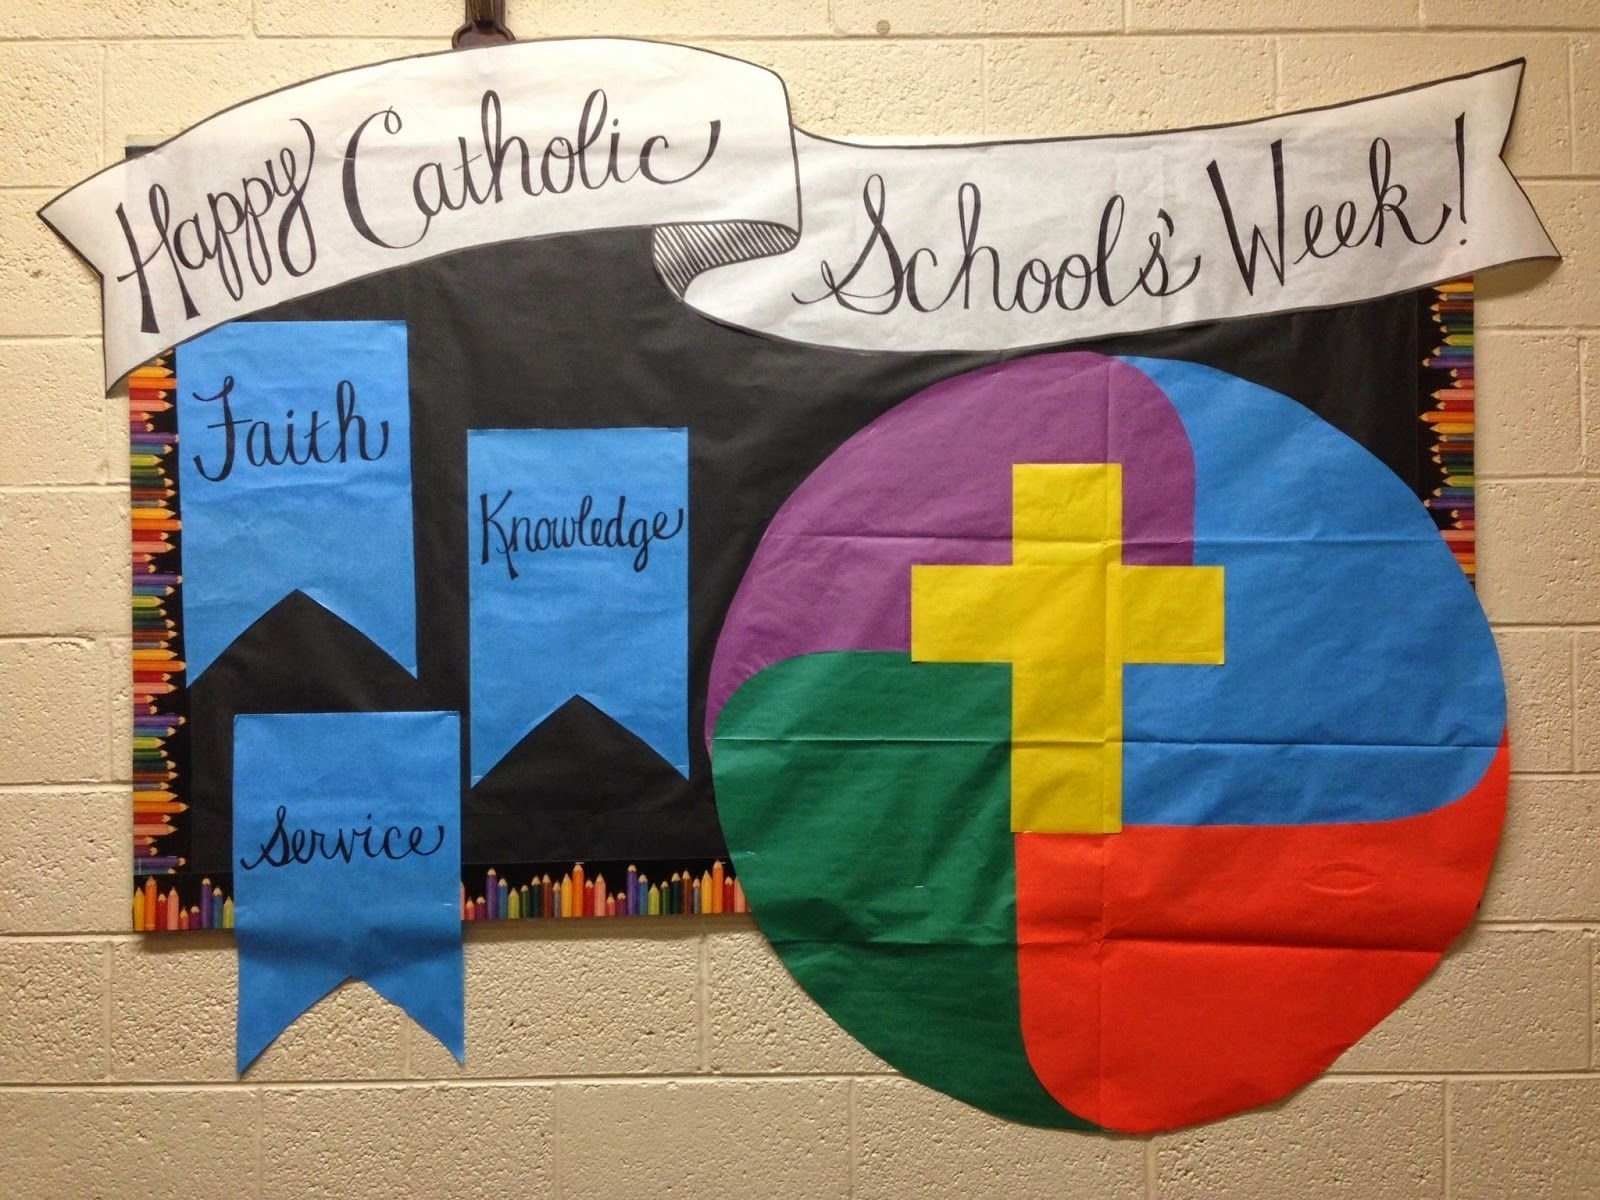 catholic schools week 2015 bulletin board idea | religious ed ideas